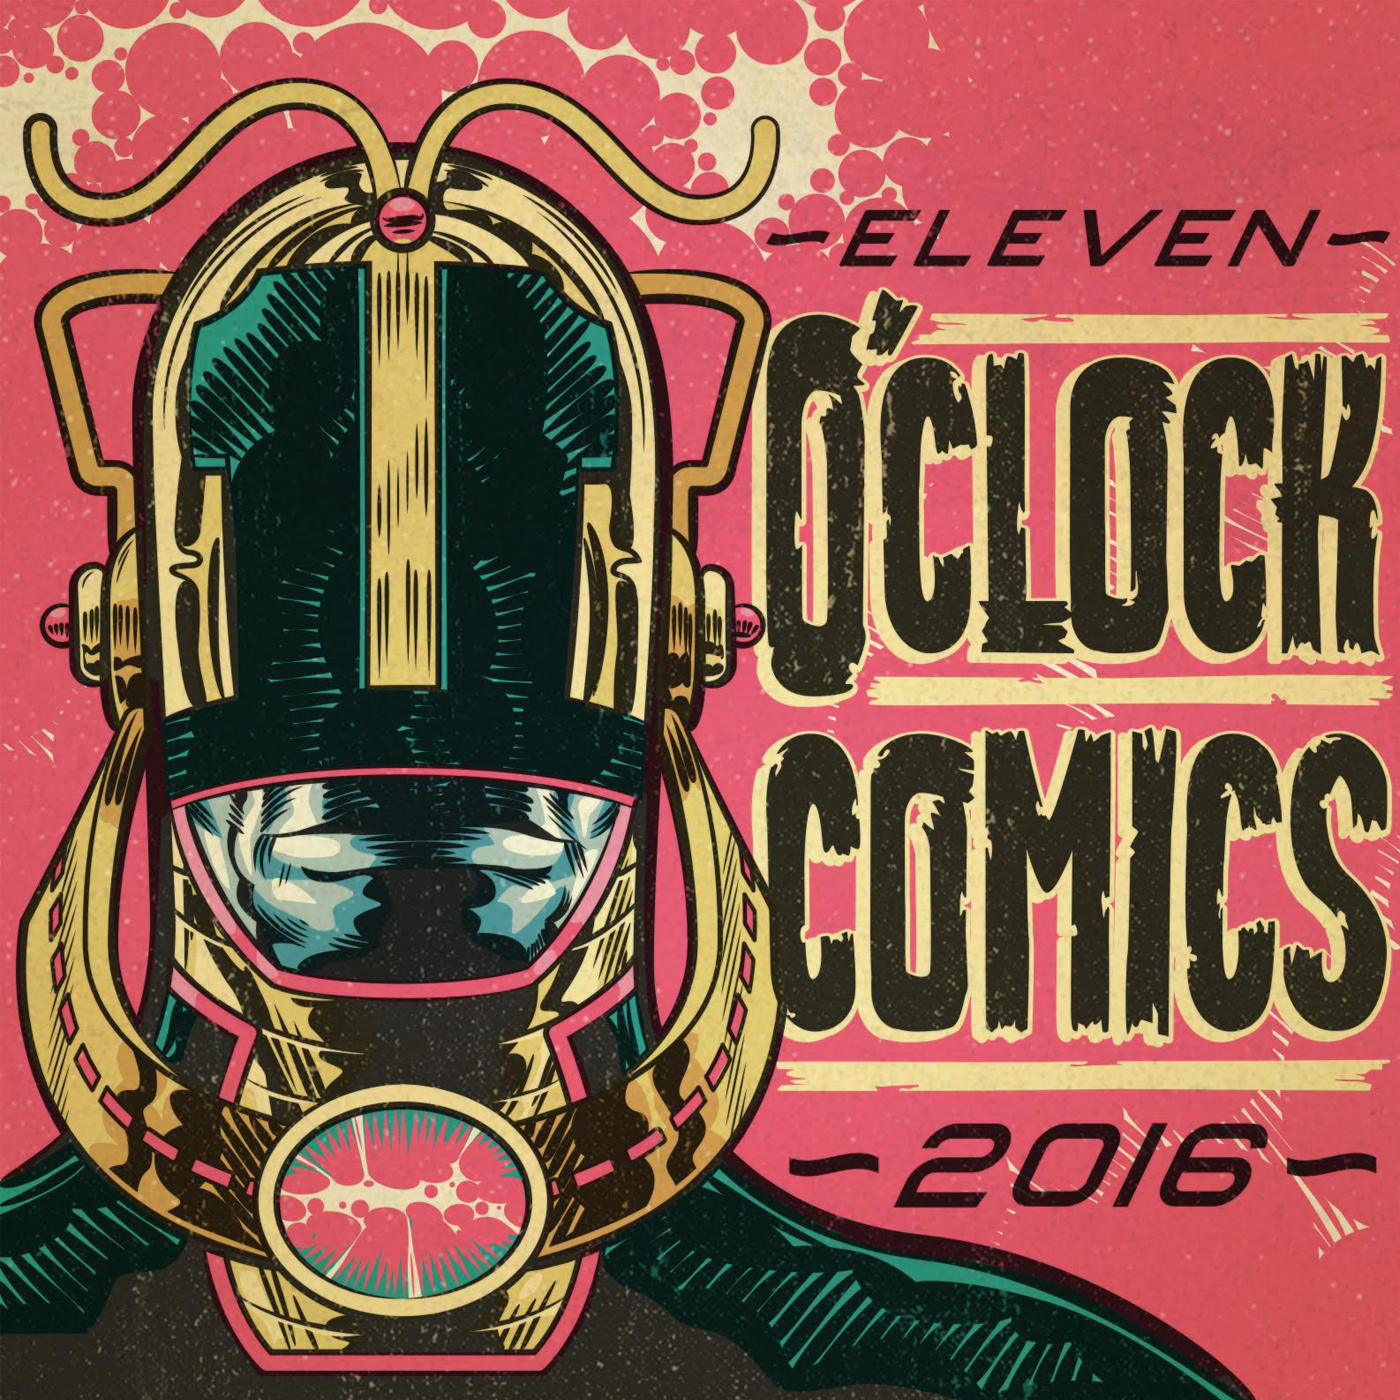 11 O'Clock Comics Episode 412